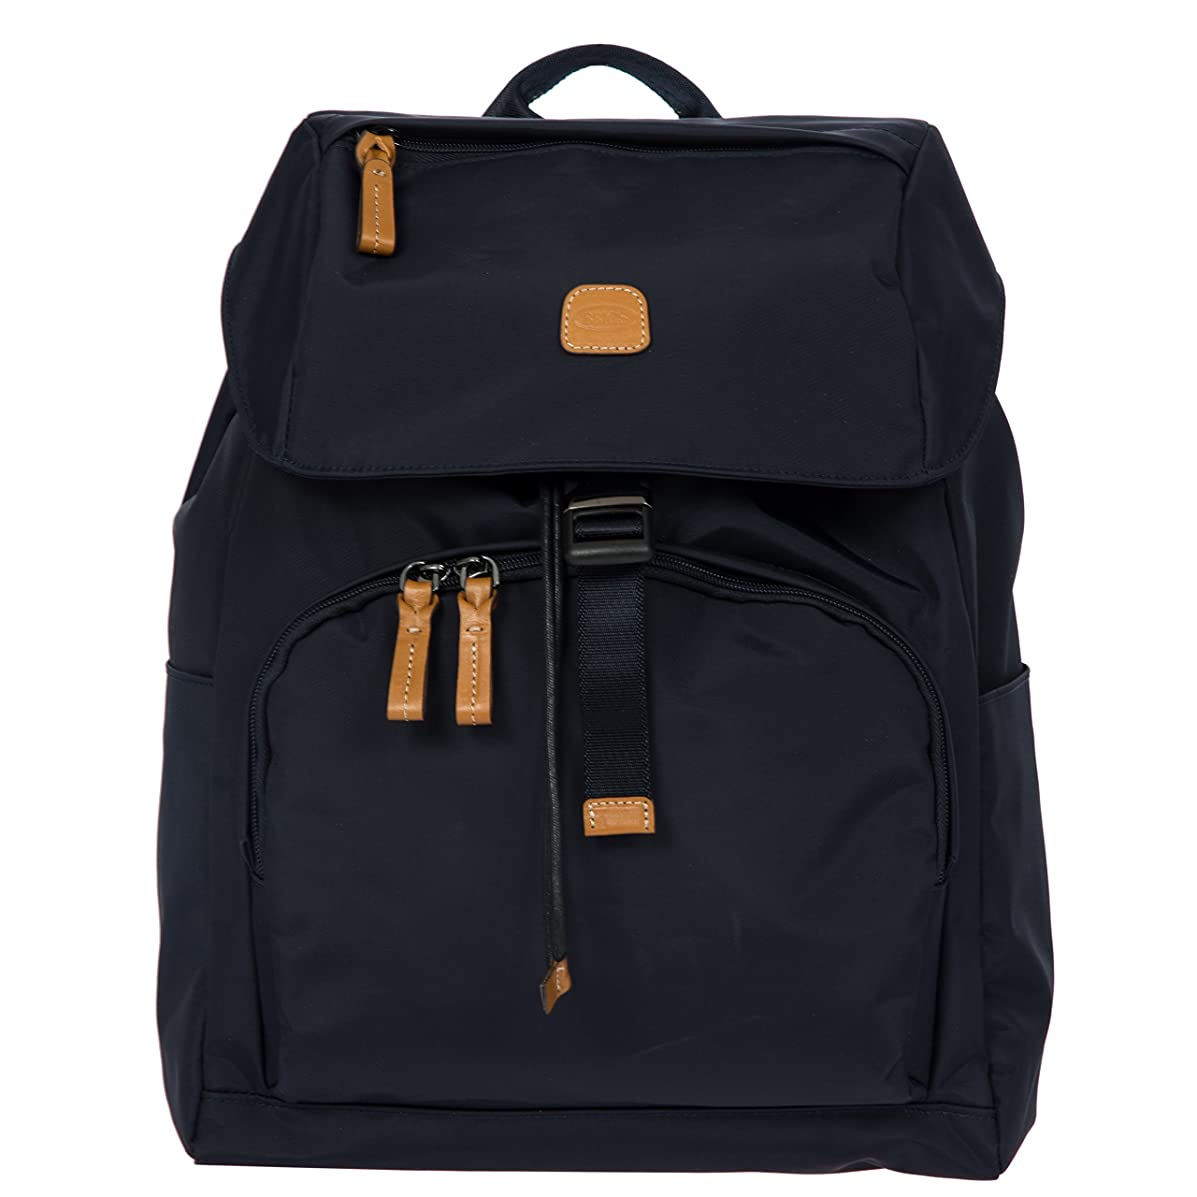 Bric's X-Bag/x-Travel 2.0 Excursion Business Laptop|Tablet Backpack, Navy, One Size